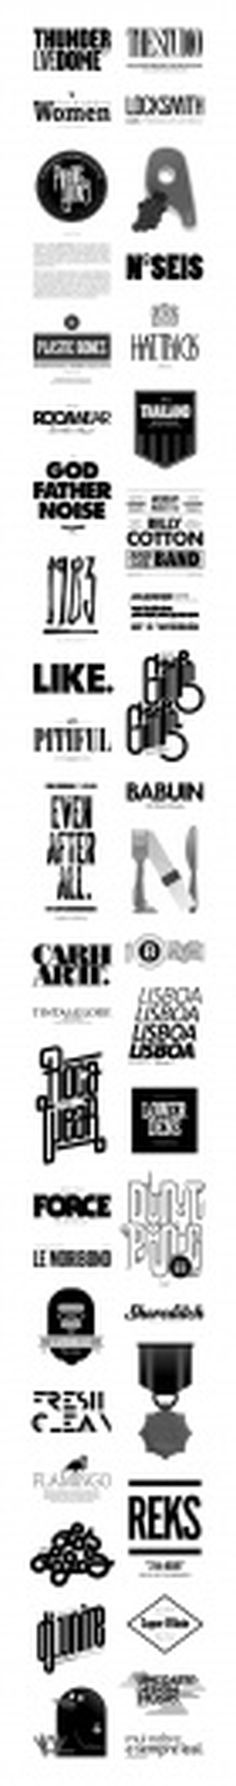 6ºRound on Typography Served #logo #typography